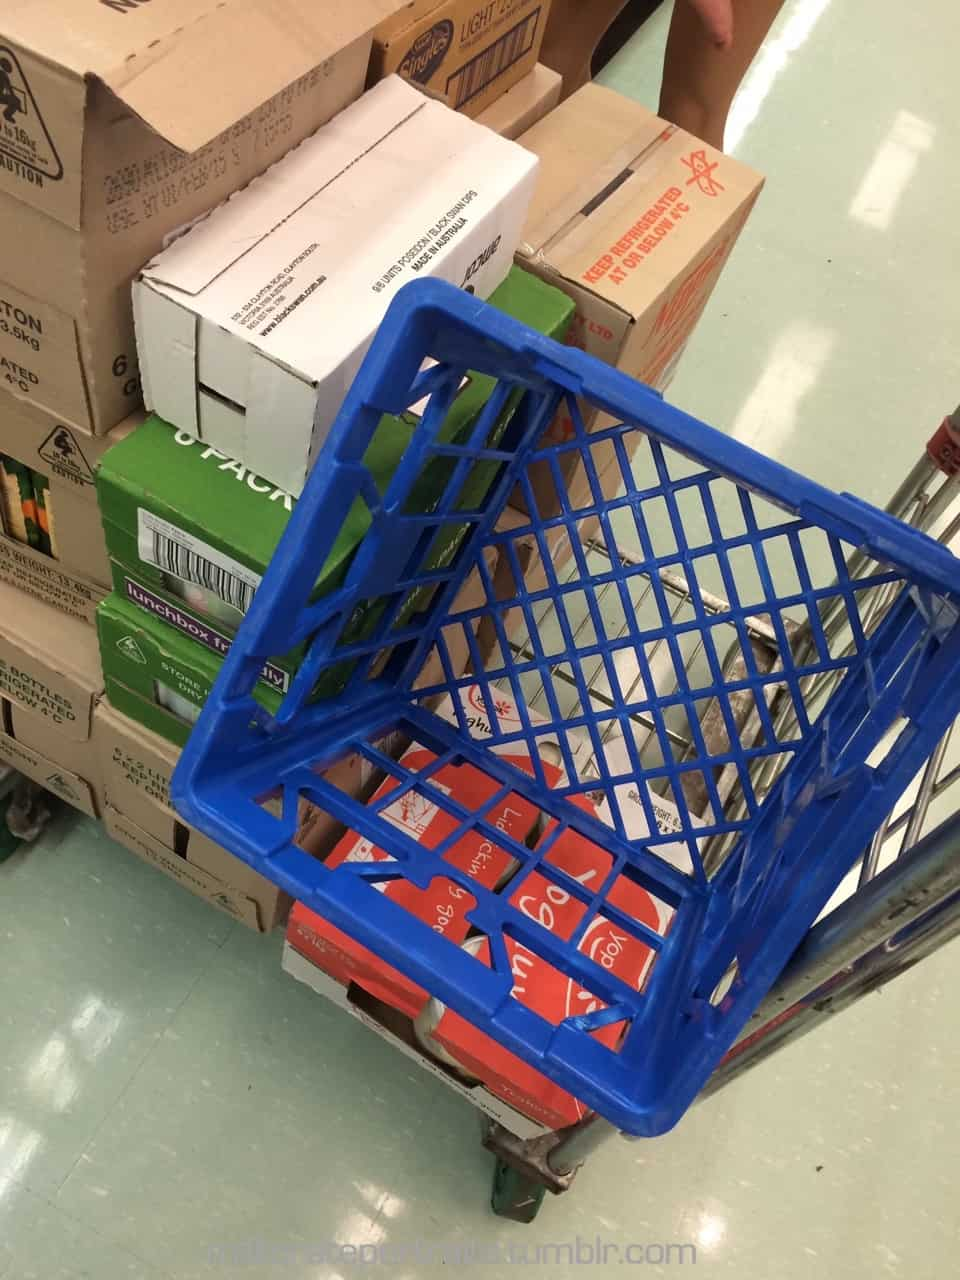 Milk crate in the supermarket